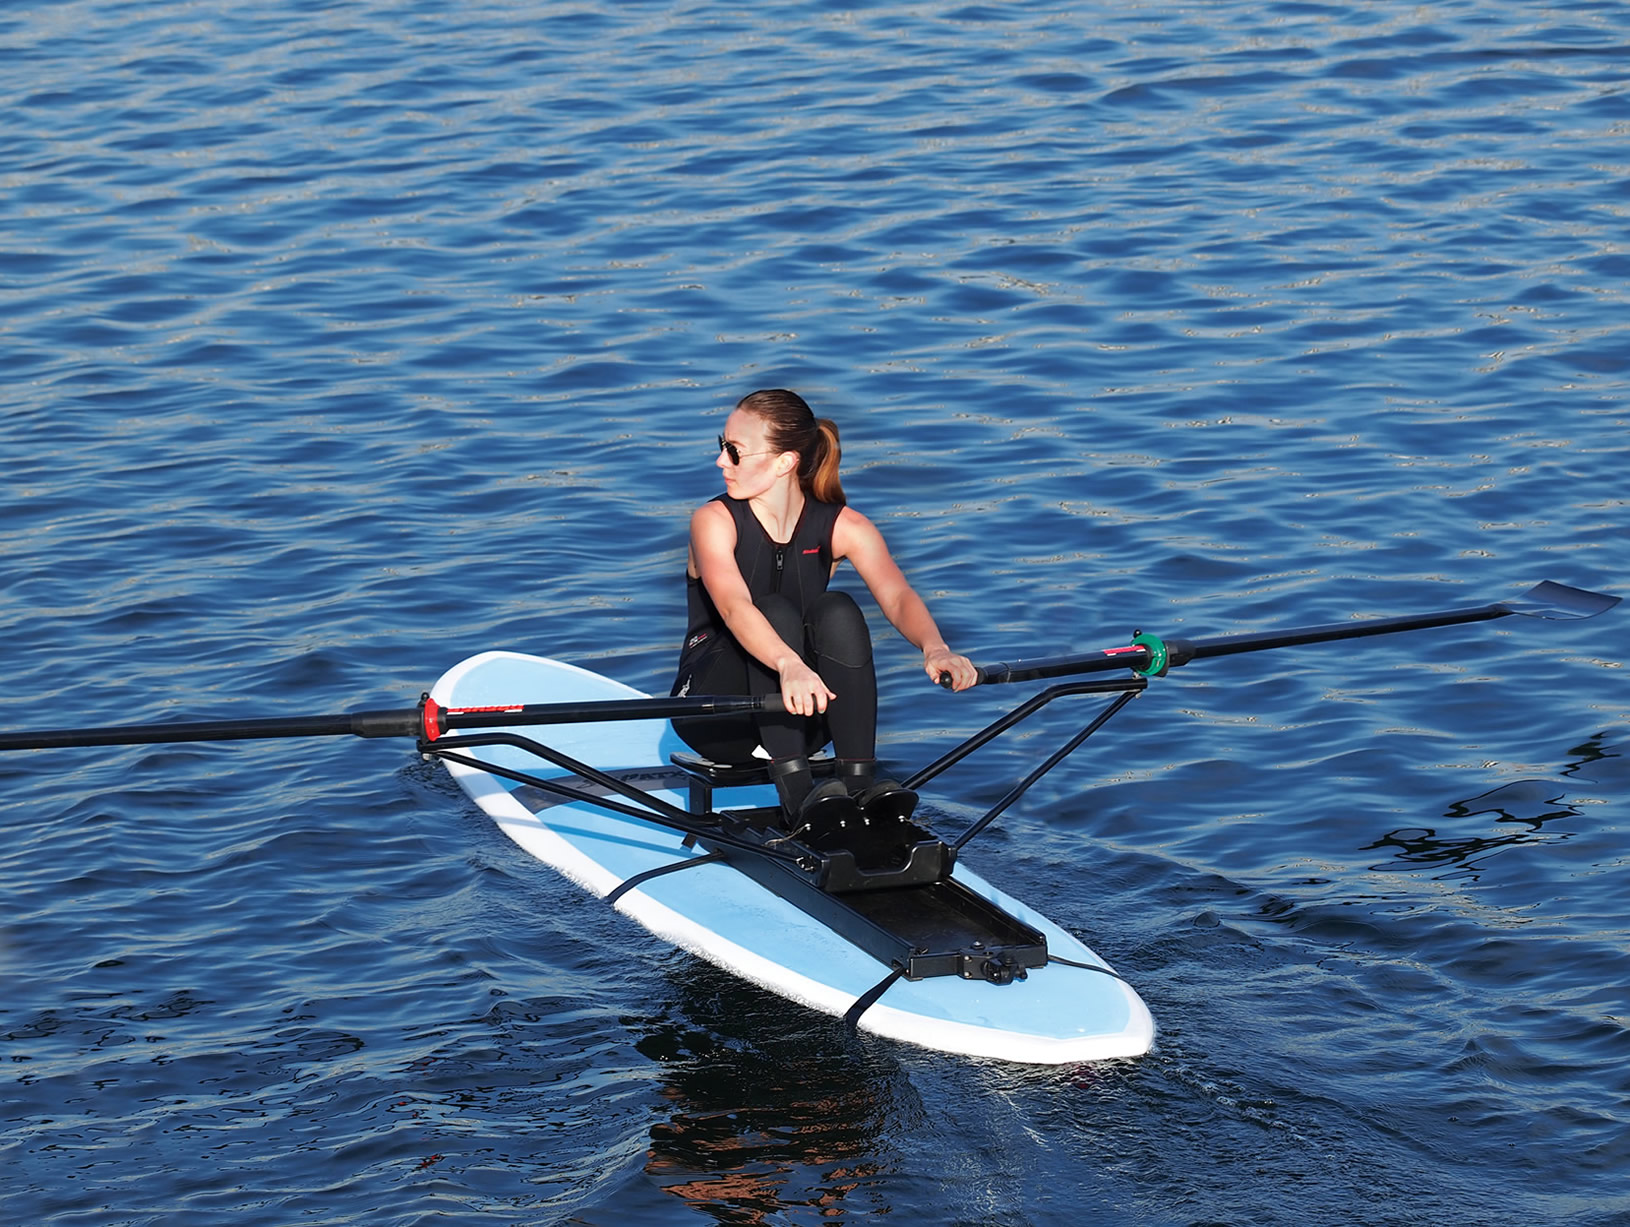 katie-oar-board-stand-up-paddle-rower-whitehall-rowing-and-sail-1630